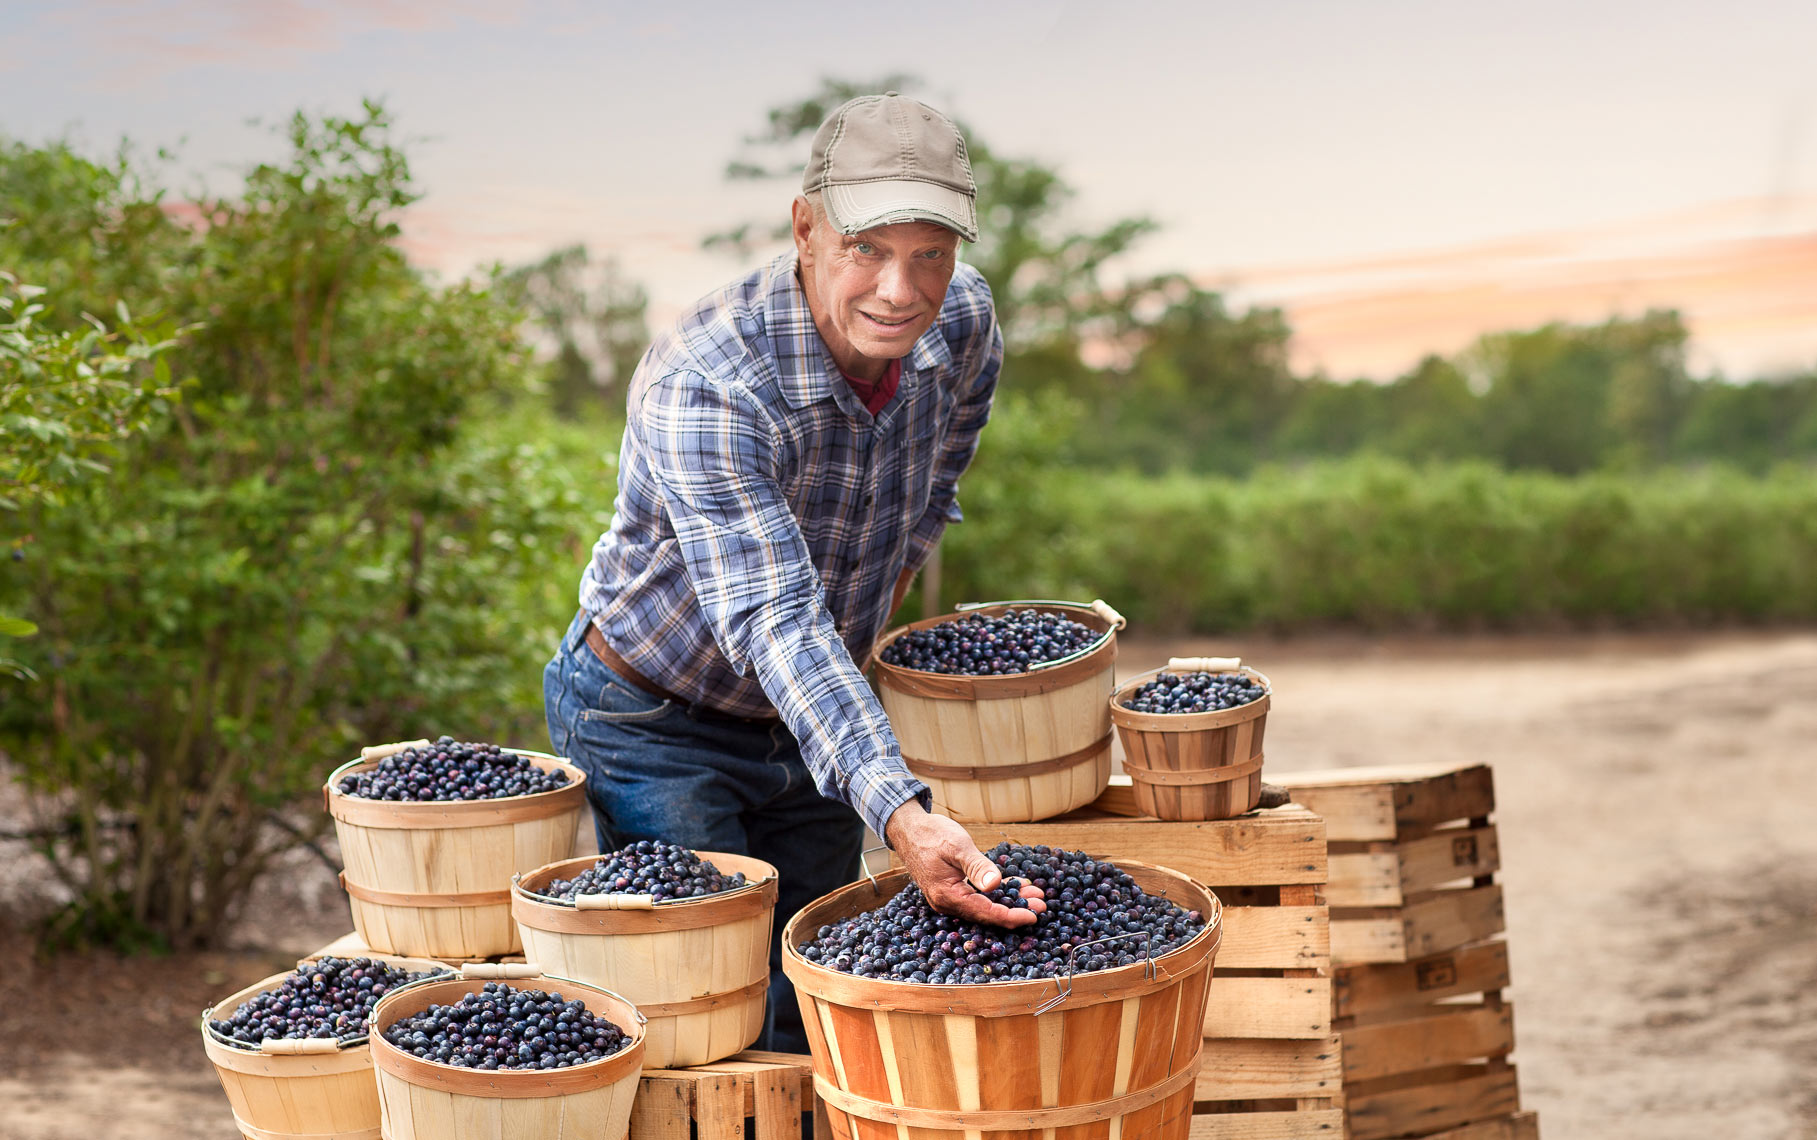 heb-blueberries-produce-department-jason-risner-photography-8670